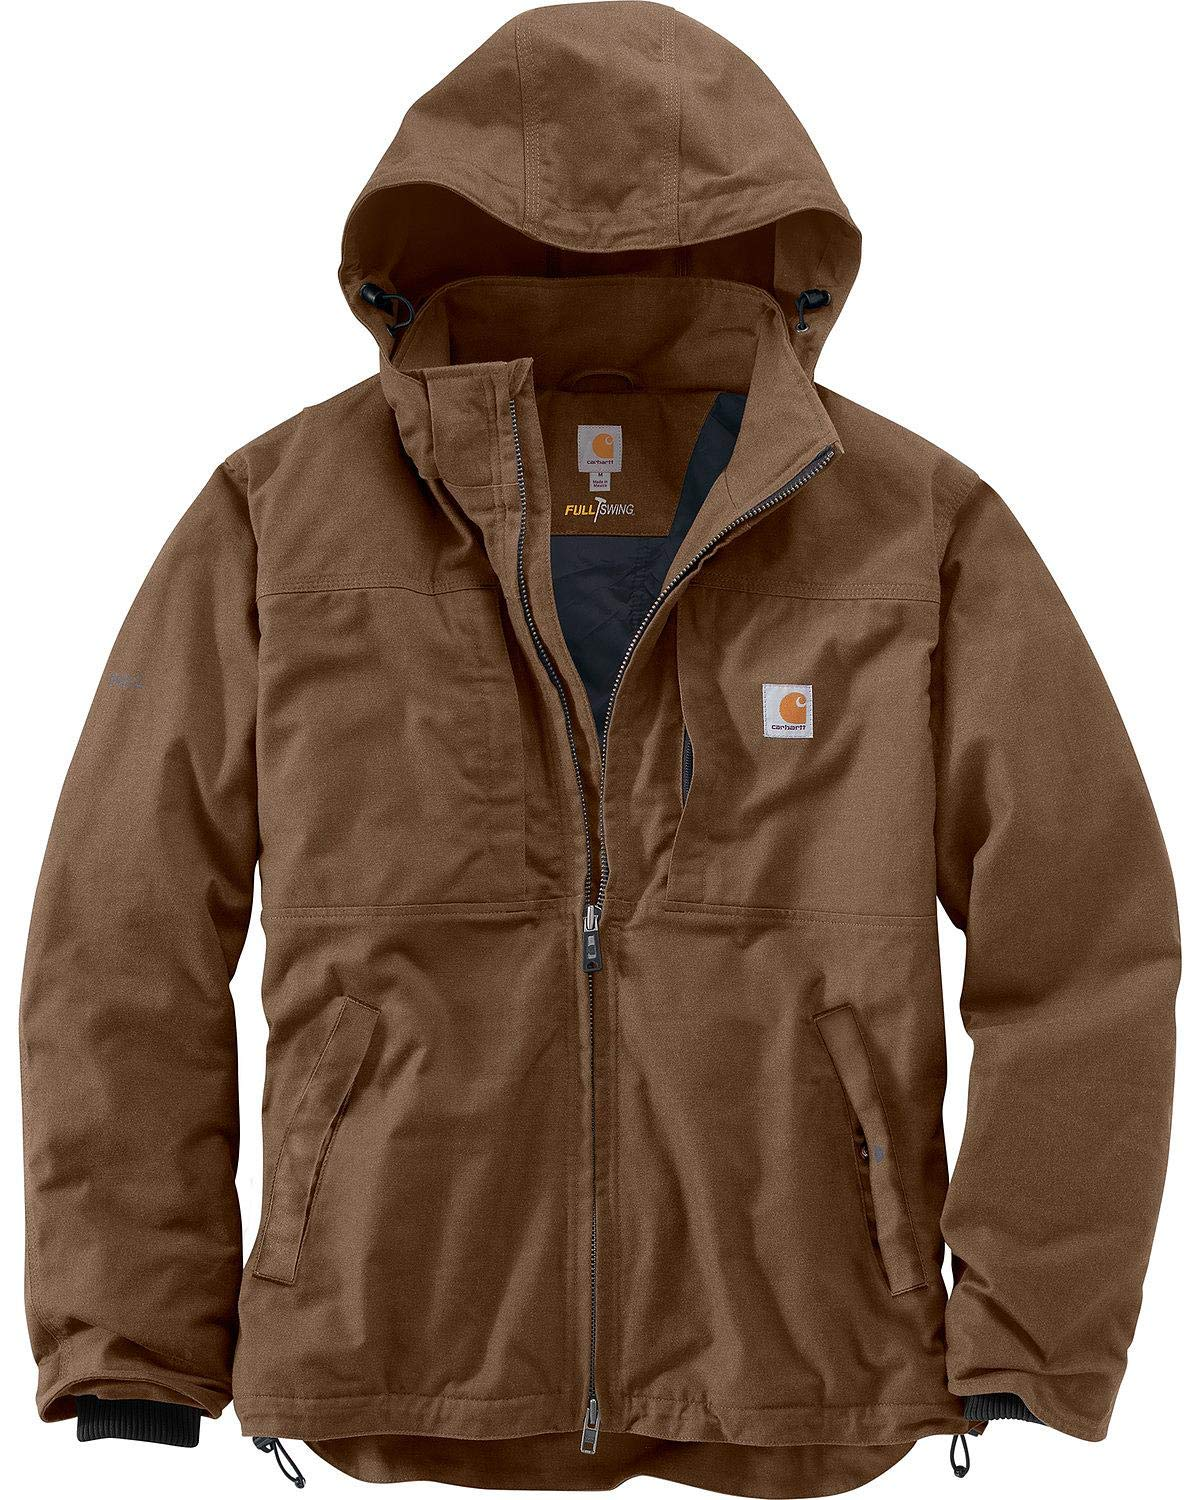 Carhartt Men's Big & Tall Full Swing Cryder Jacket, Canyon Brown, Large/Tall by Carhartt